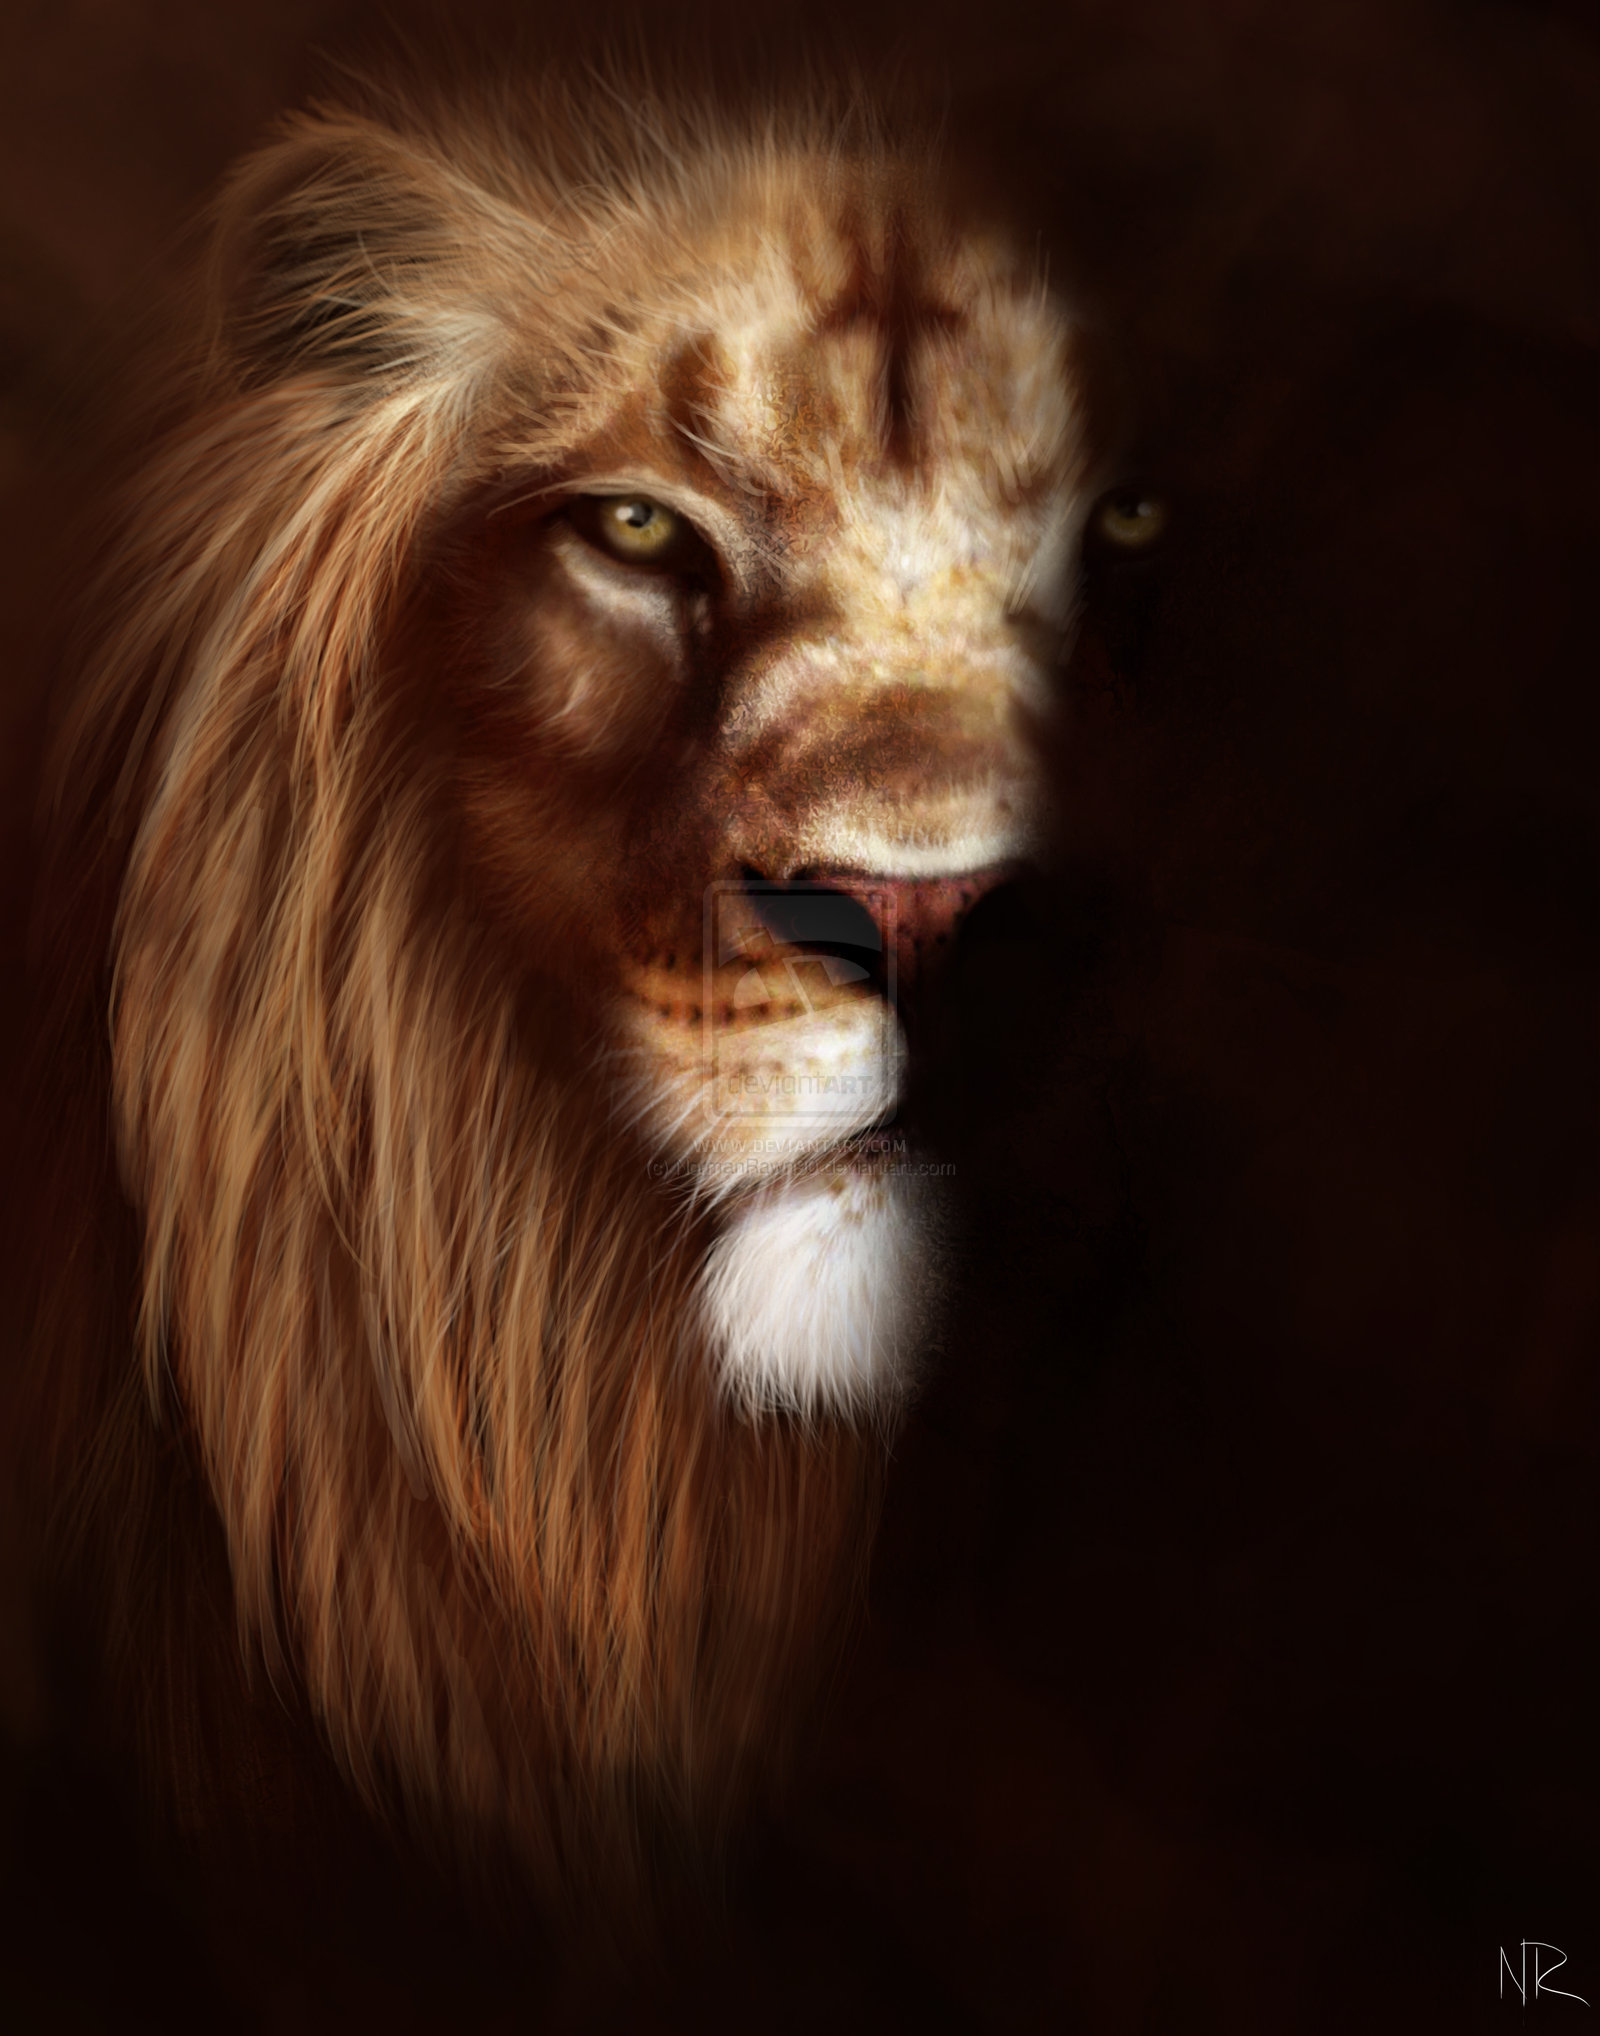 Angry Lions Face images